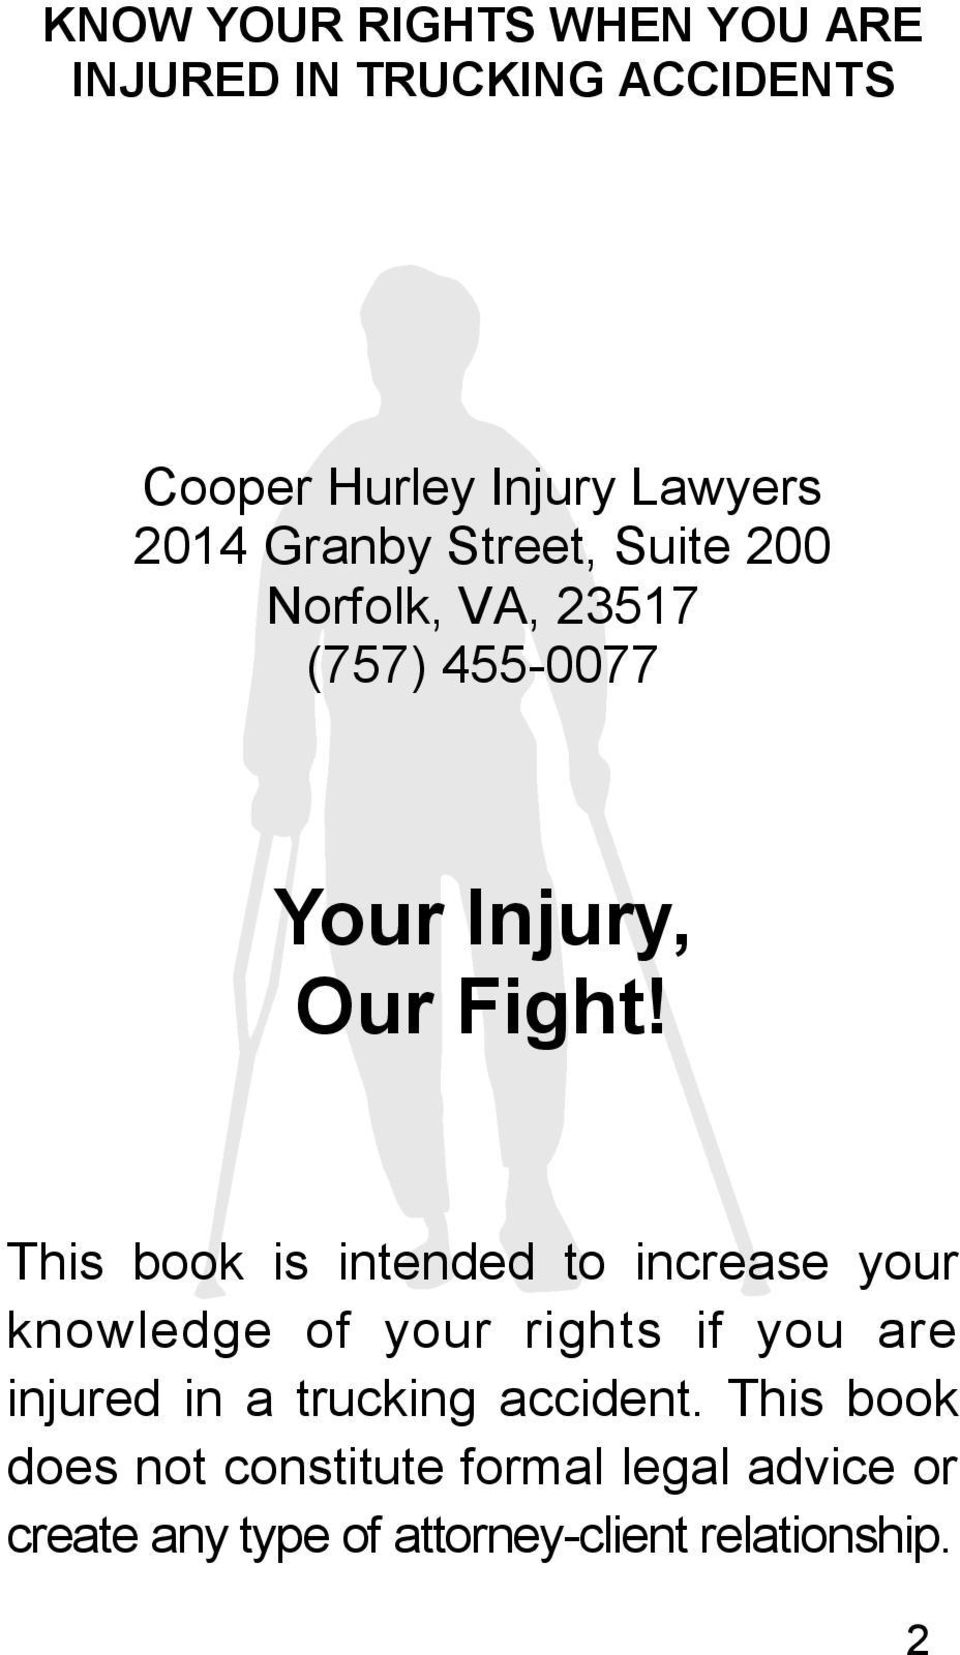 This book is intended to increase your knowledge of your rights if you are injured in a trucking